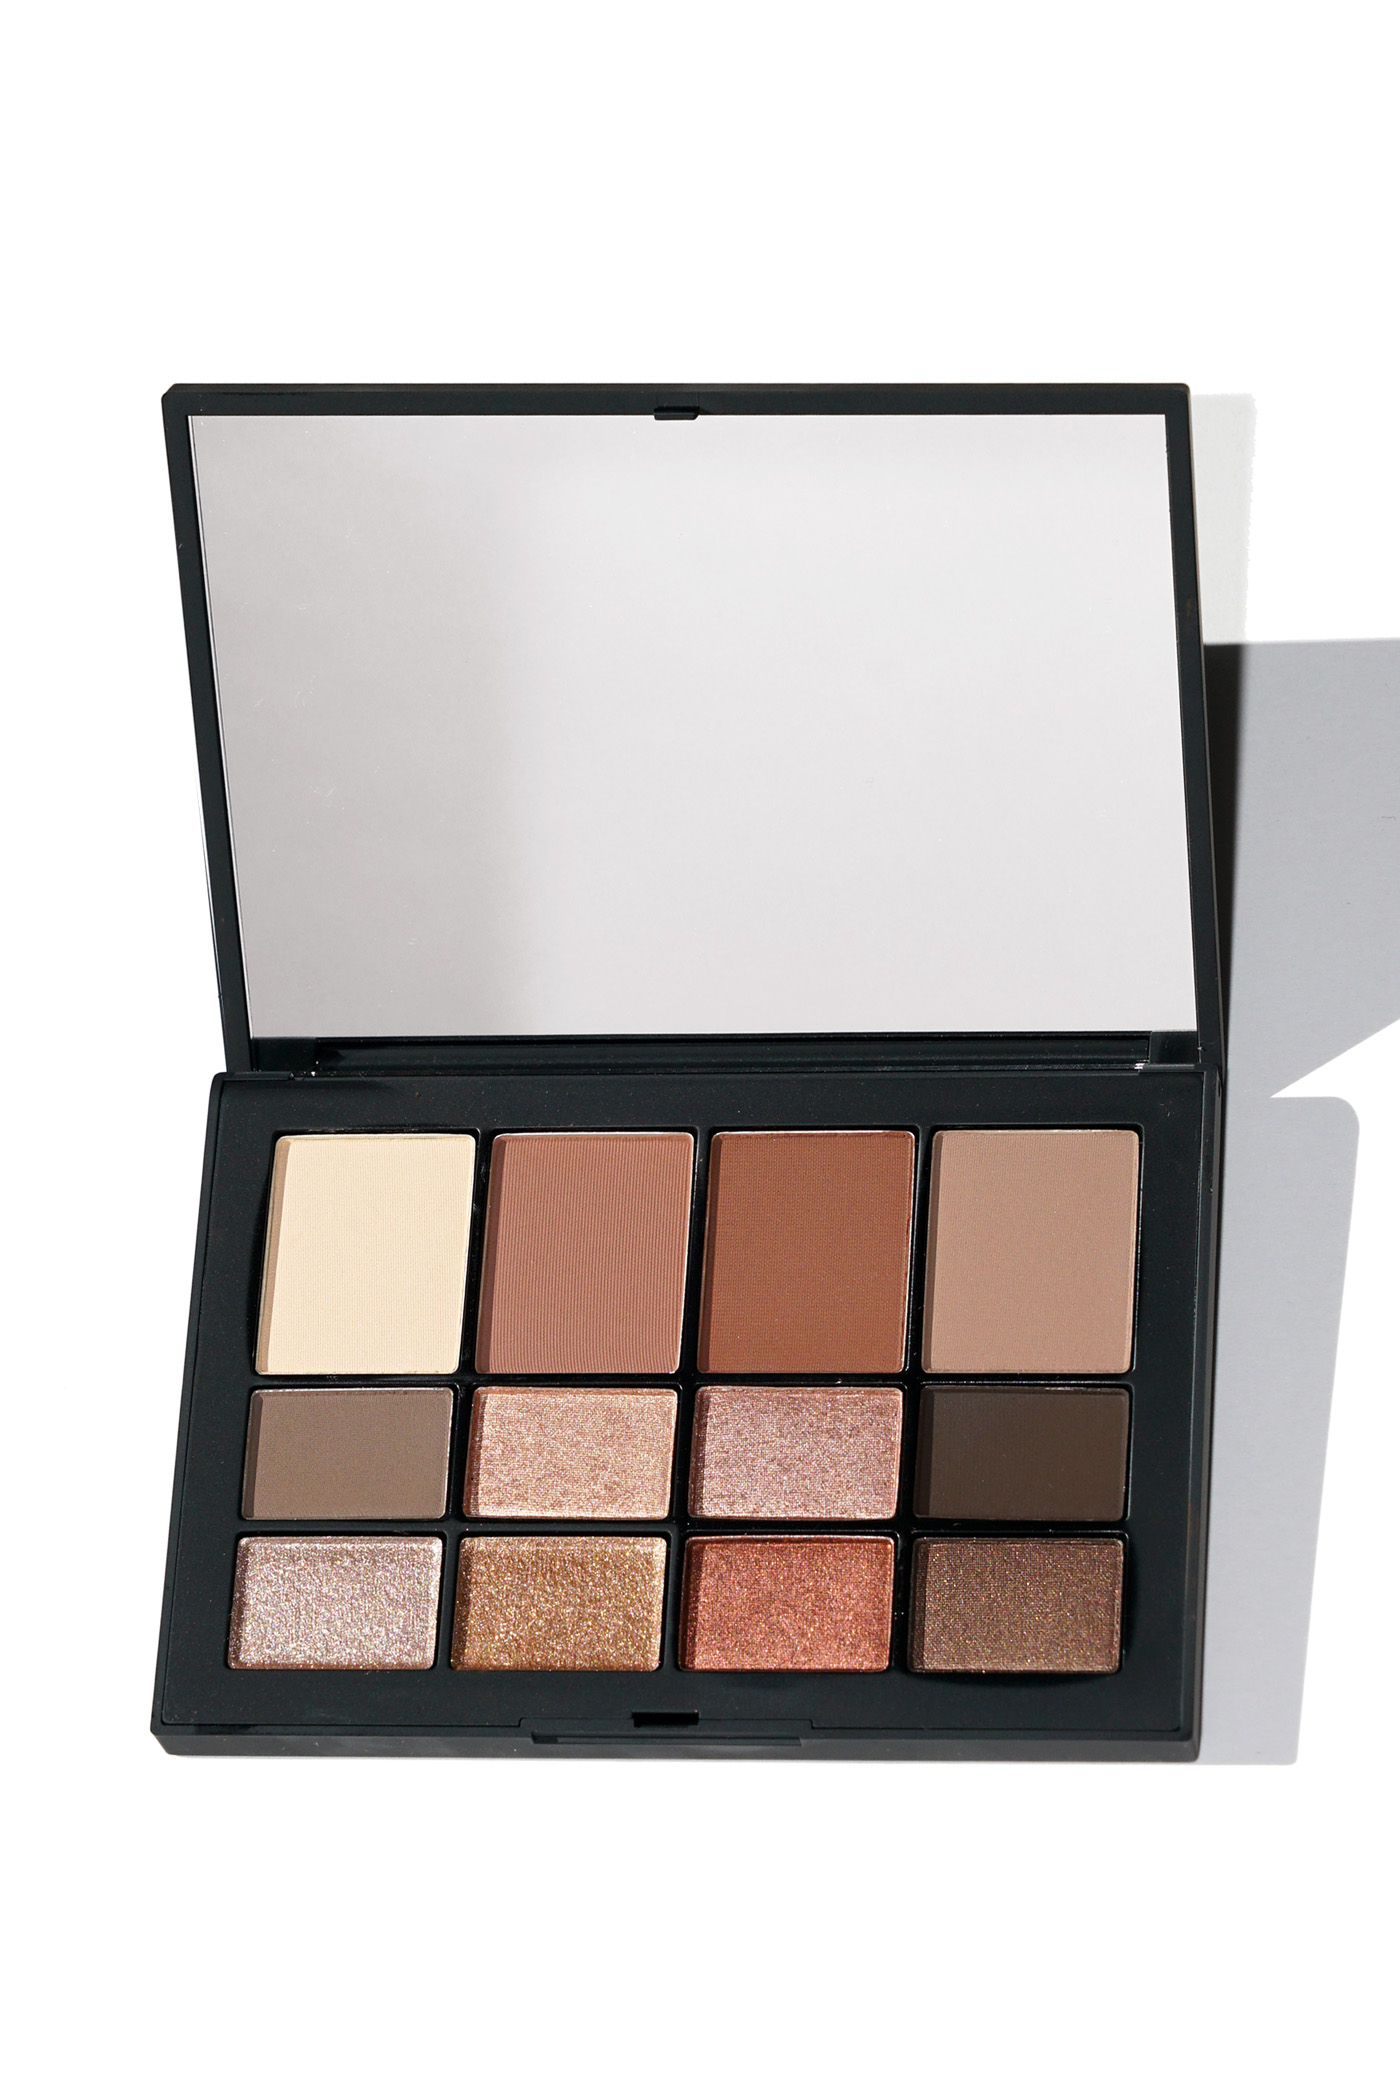 Palette de fards à paupières Deep Skin de NARS, printemps 2019 | Le look book beauté